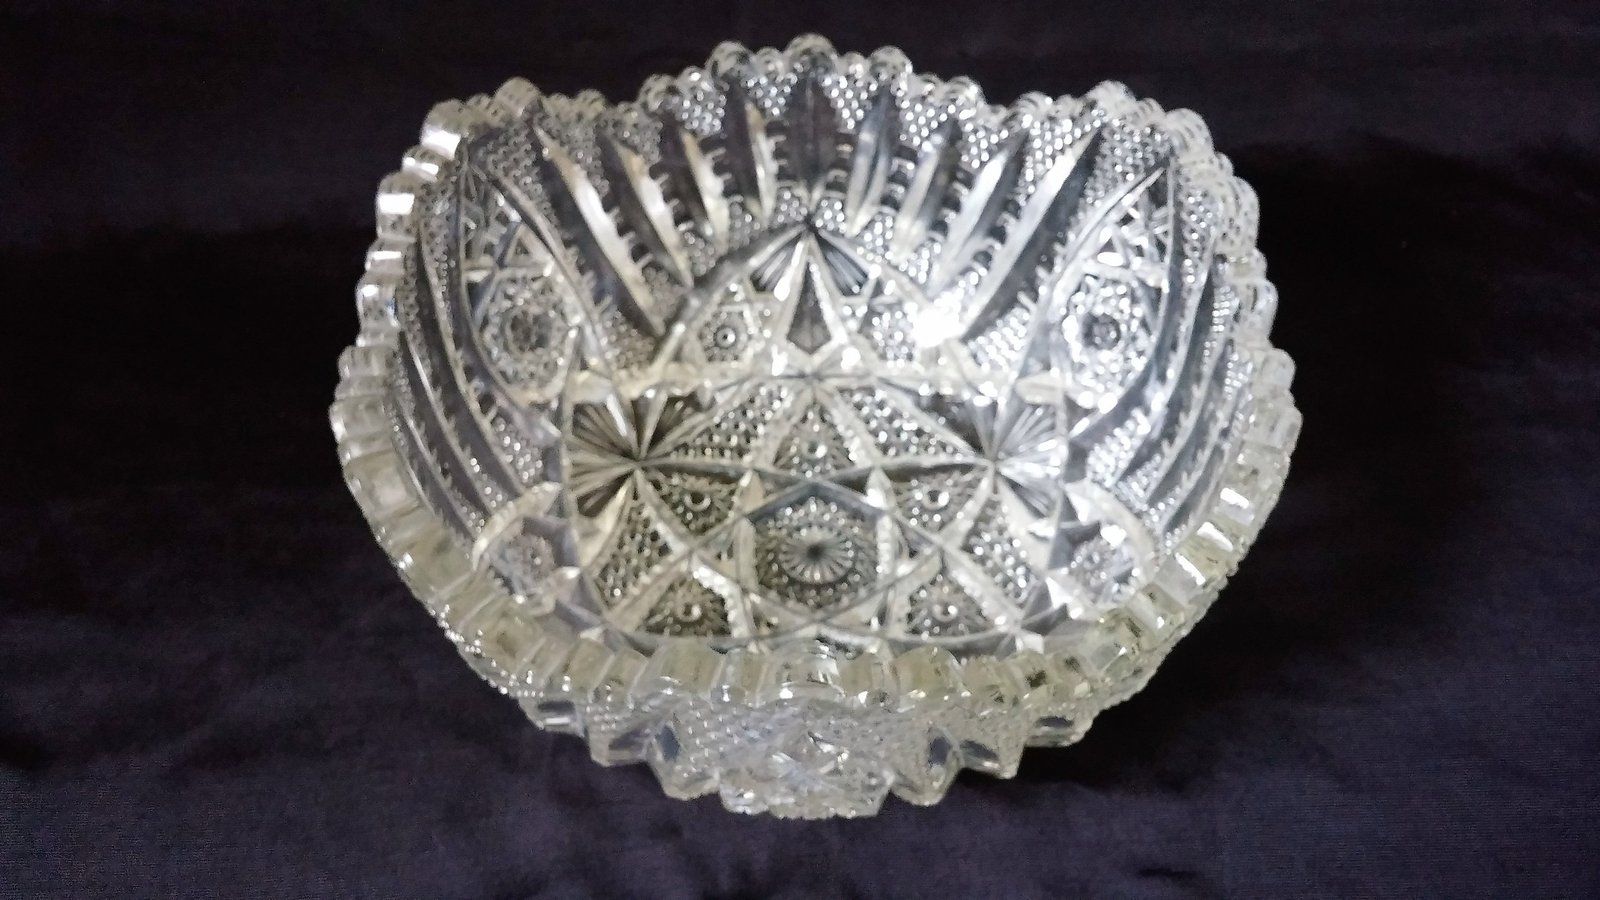 Imperial Nucut #464 'Star and Cane' Pattern Salad Bowl